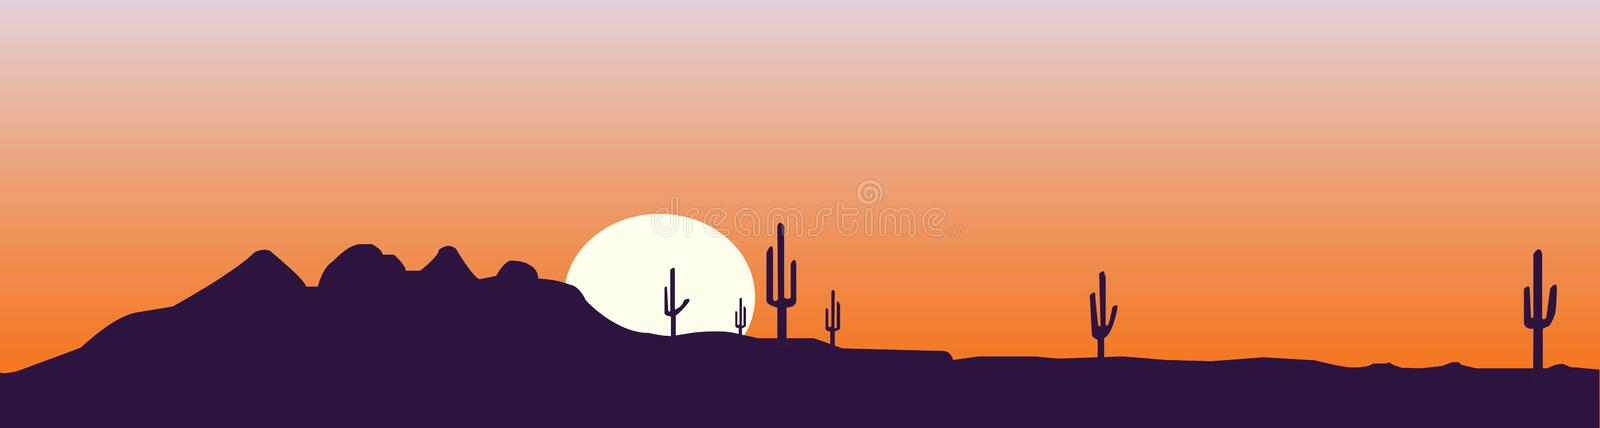 Arizona-Skyline am Sonnenuntergang